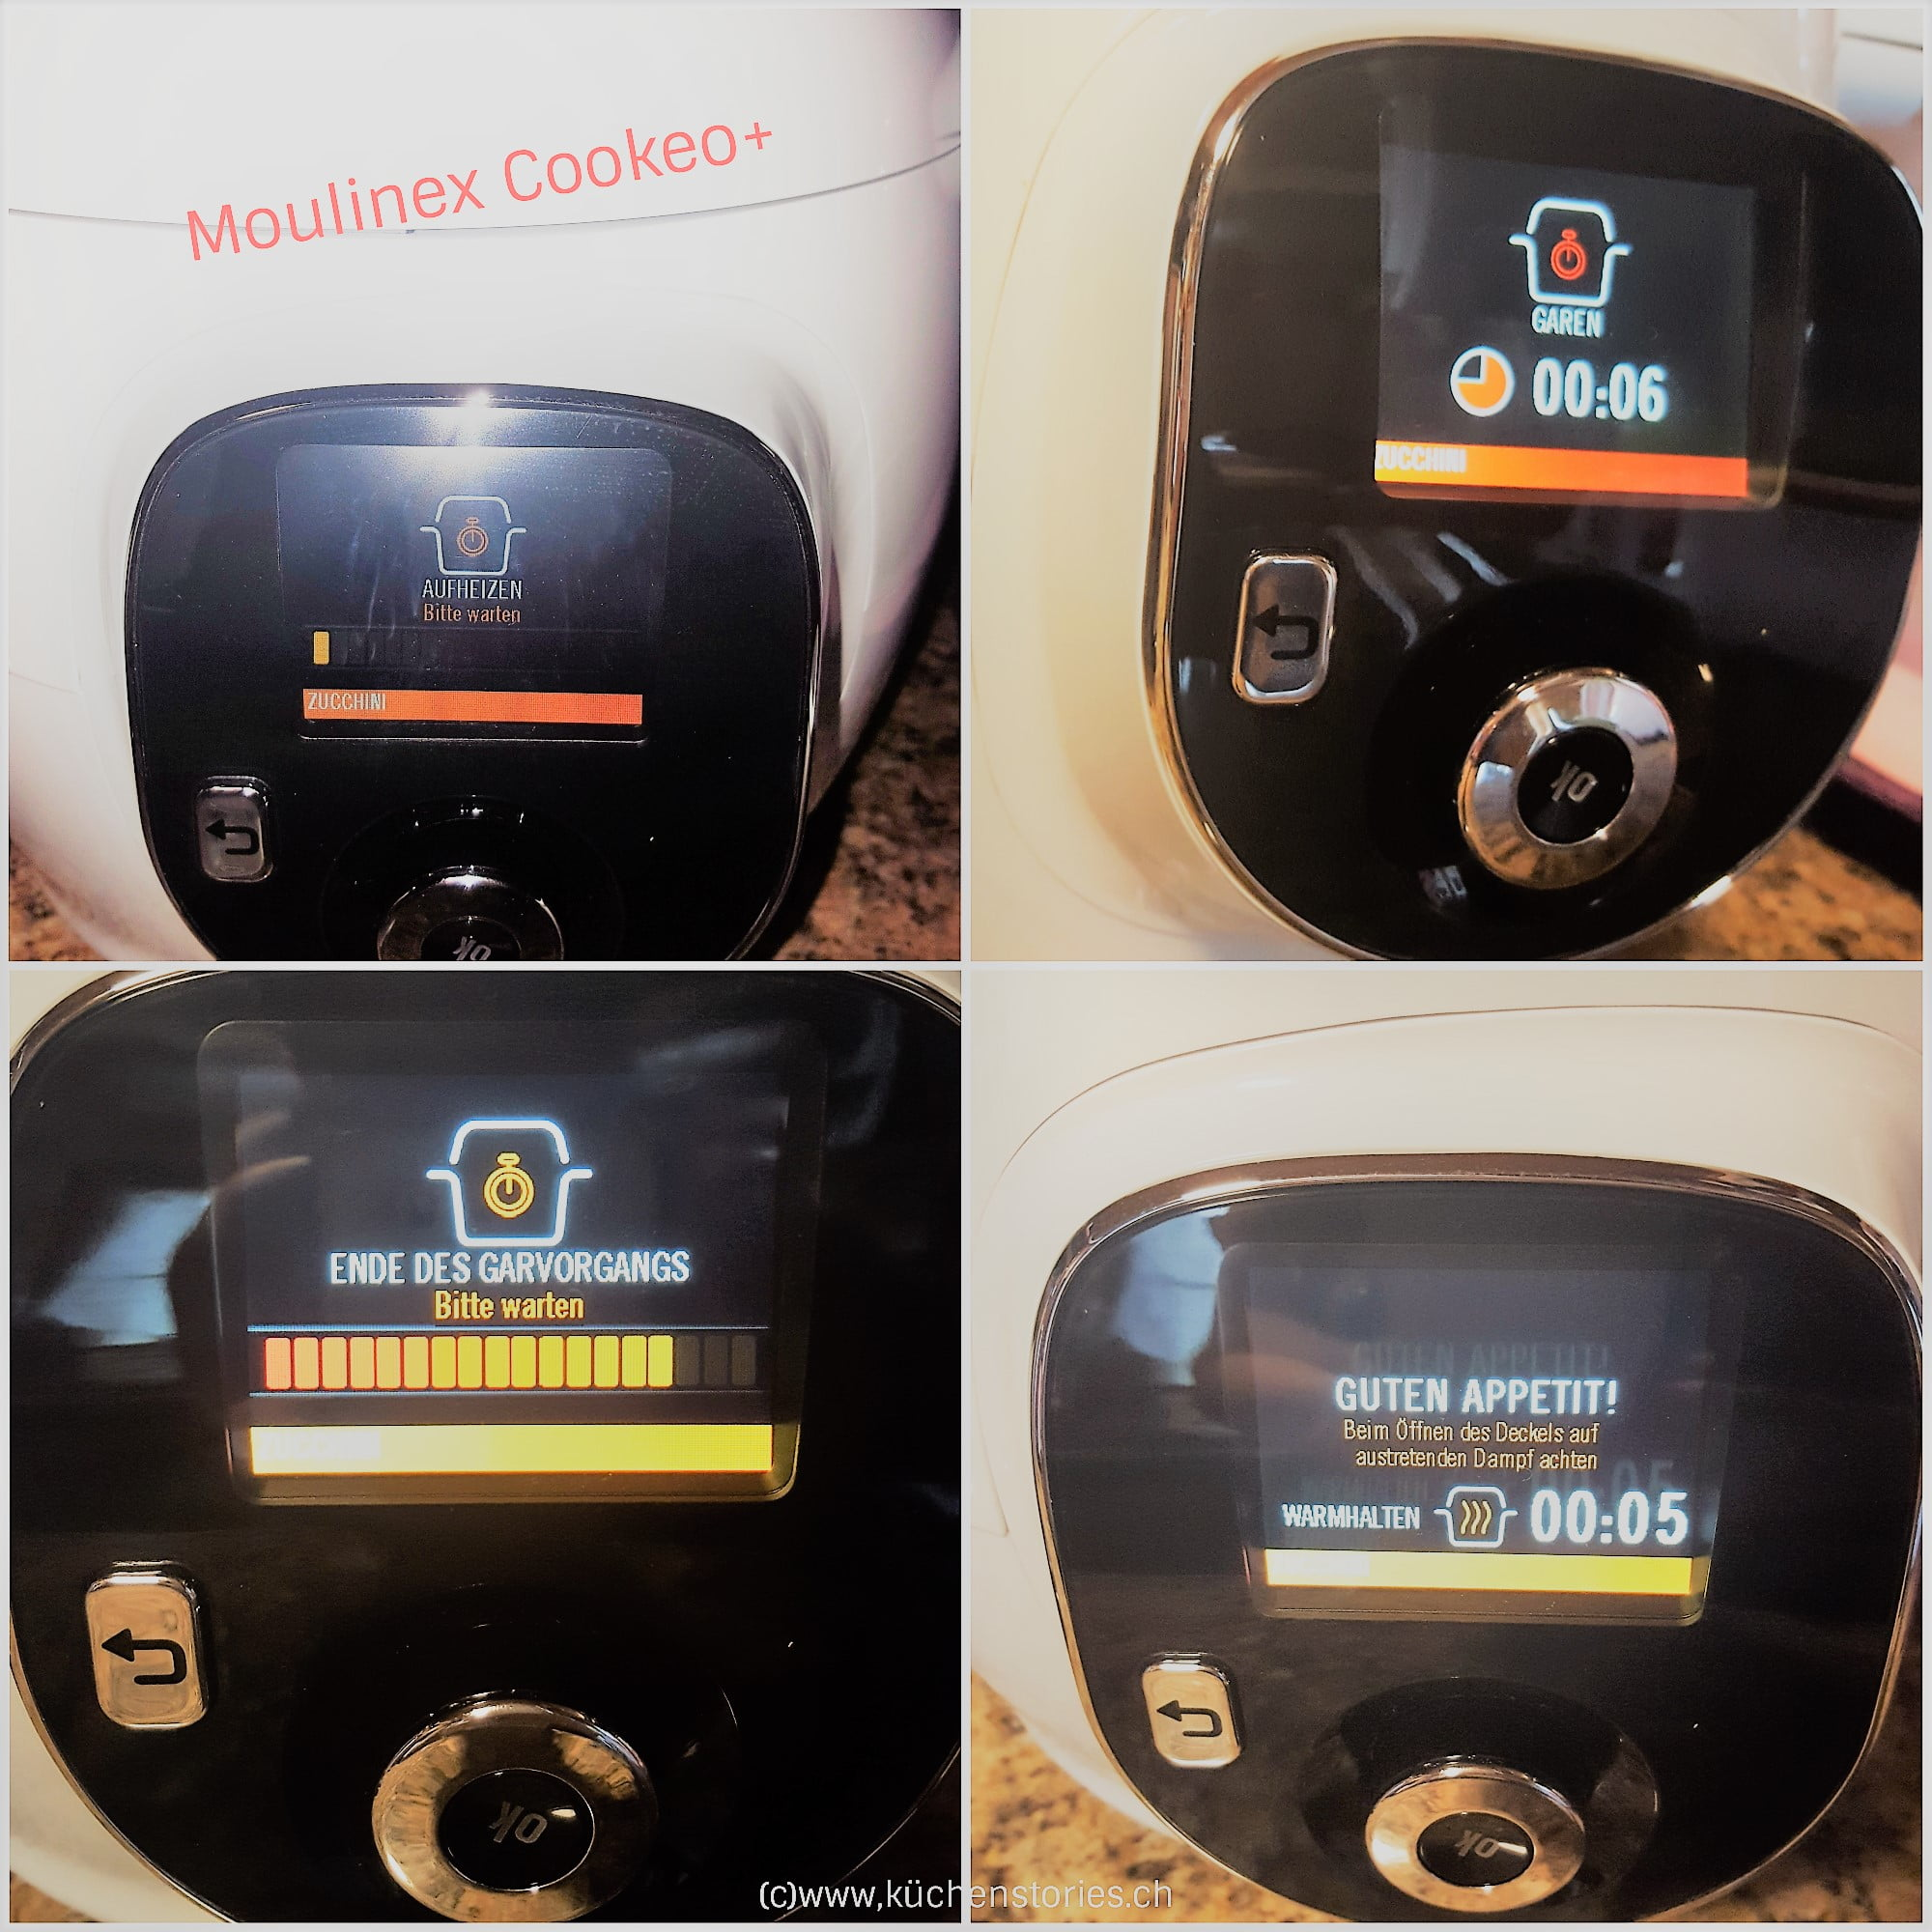 Moulinex Cookeo+